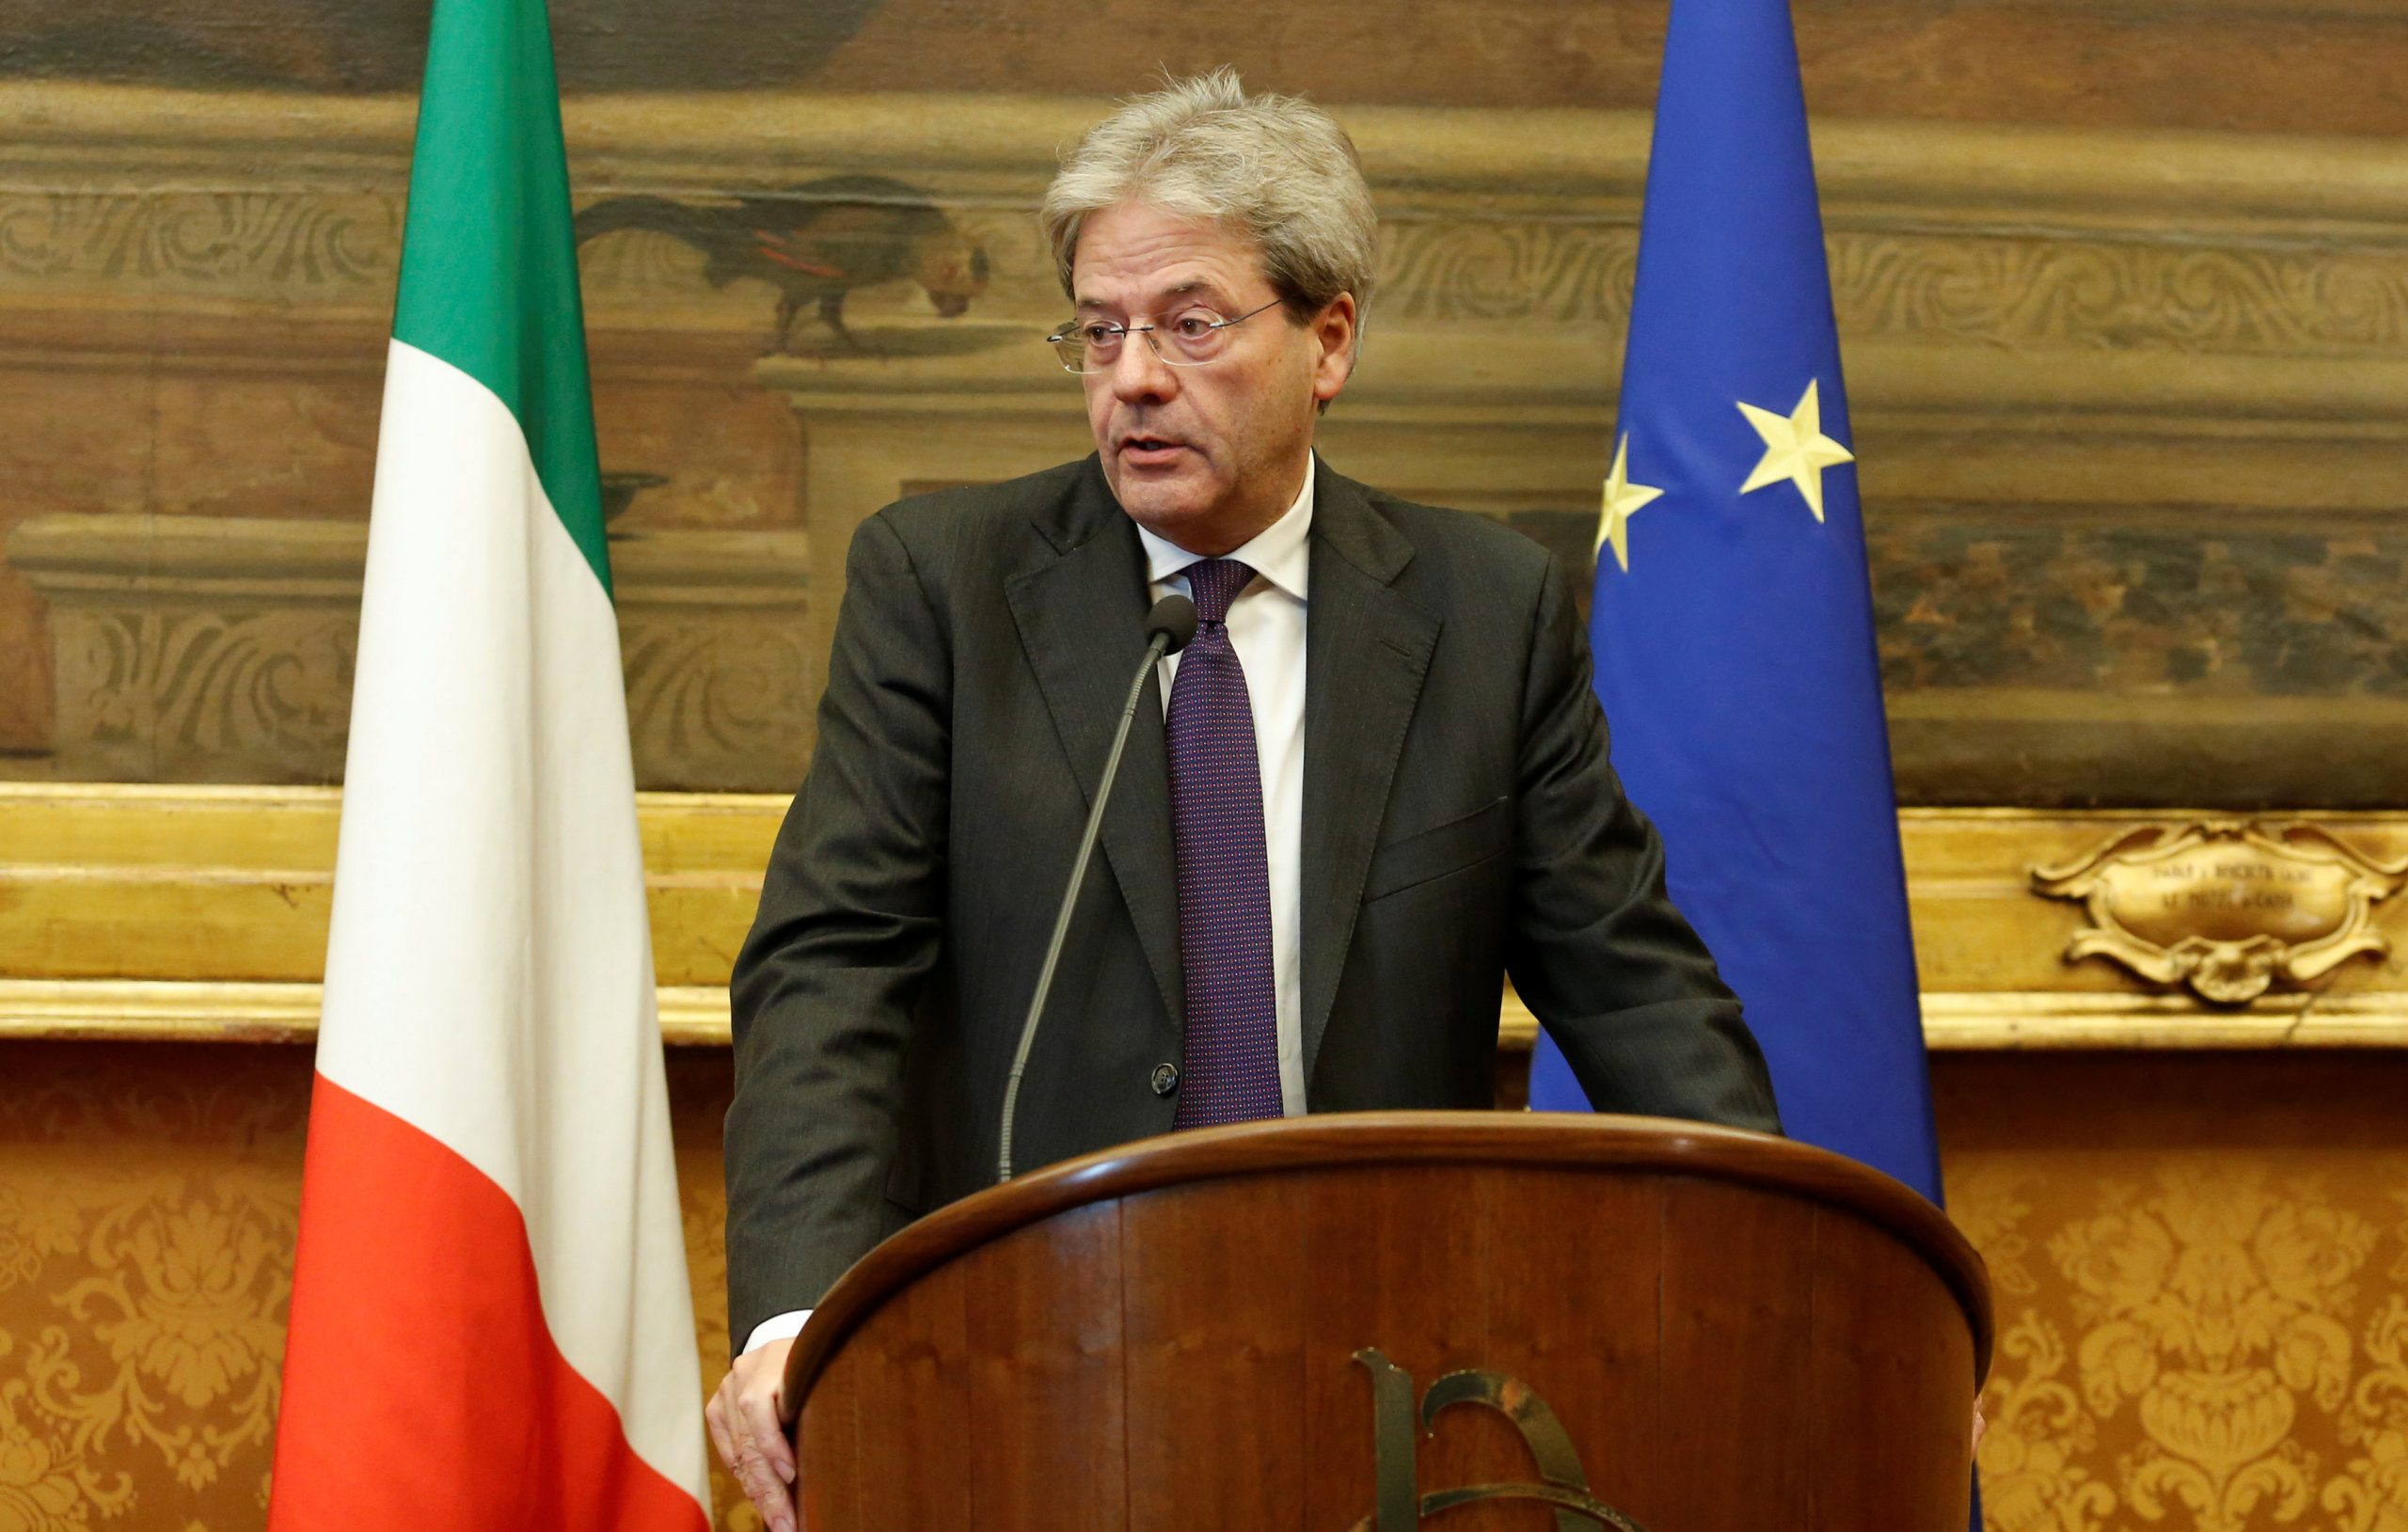 Weird Italy 2016-12-12T180812Z_2_LYNXMPECBB118_RTROPTP_4_ITALY-POLITICS-scaled Italian PM unveils new government, but centre-right ally threatens to quit Latest Italian News and Videos  Paolo Gentiloni matteo renzi Italian Prime Minister